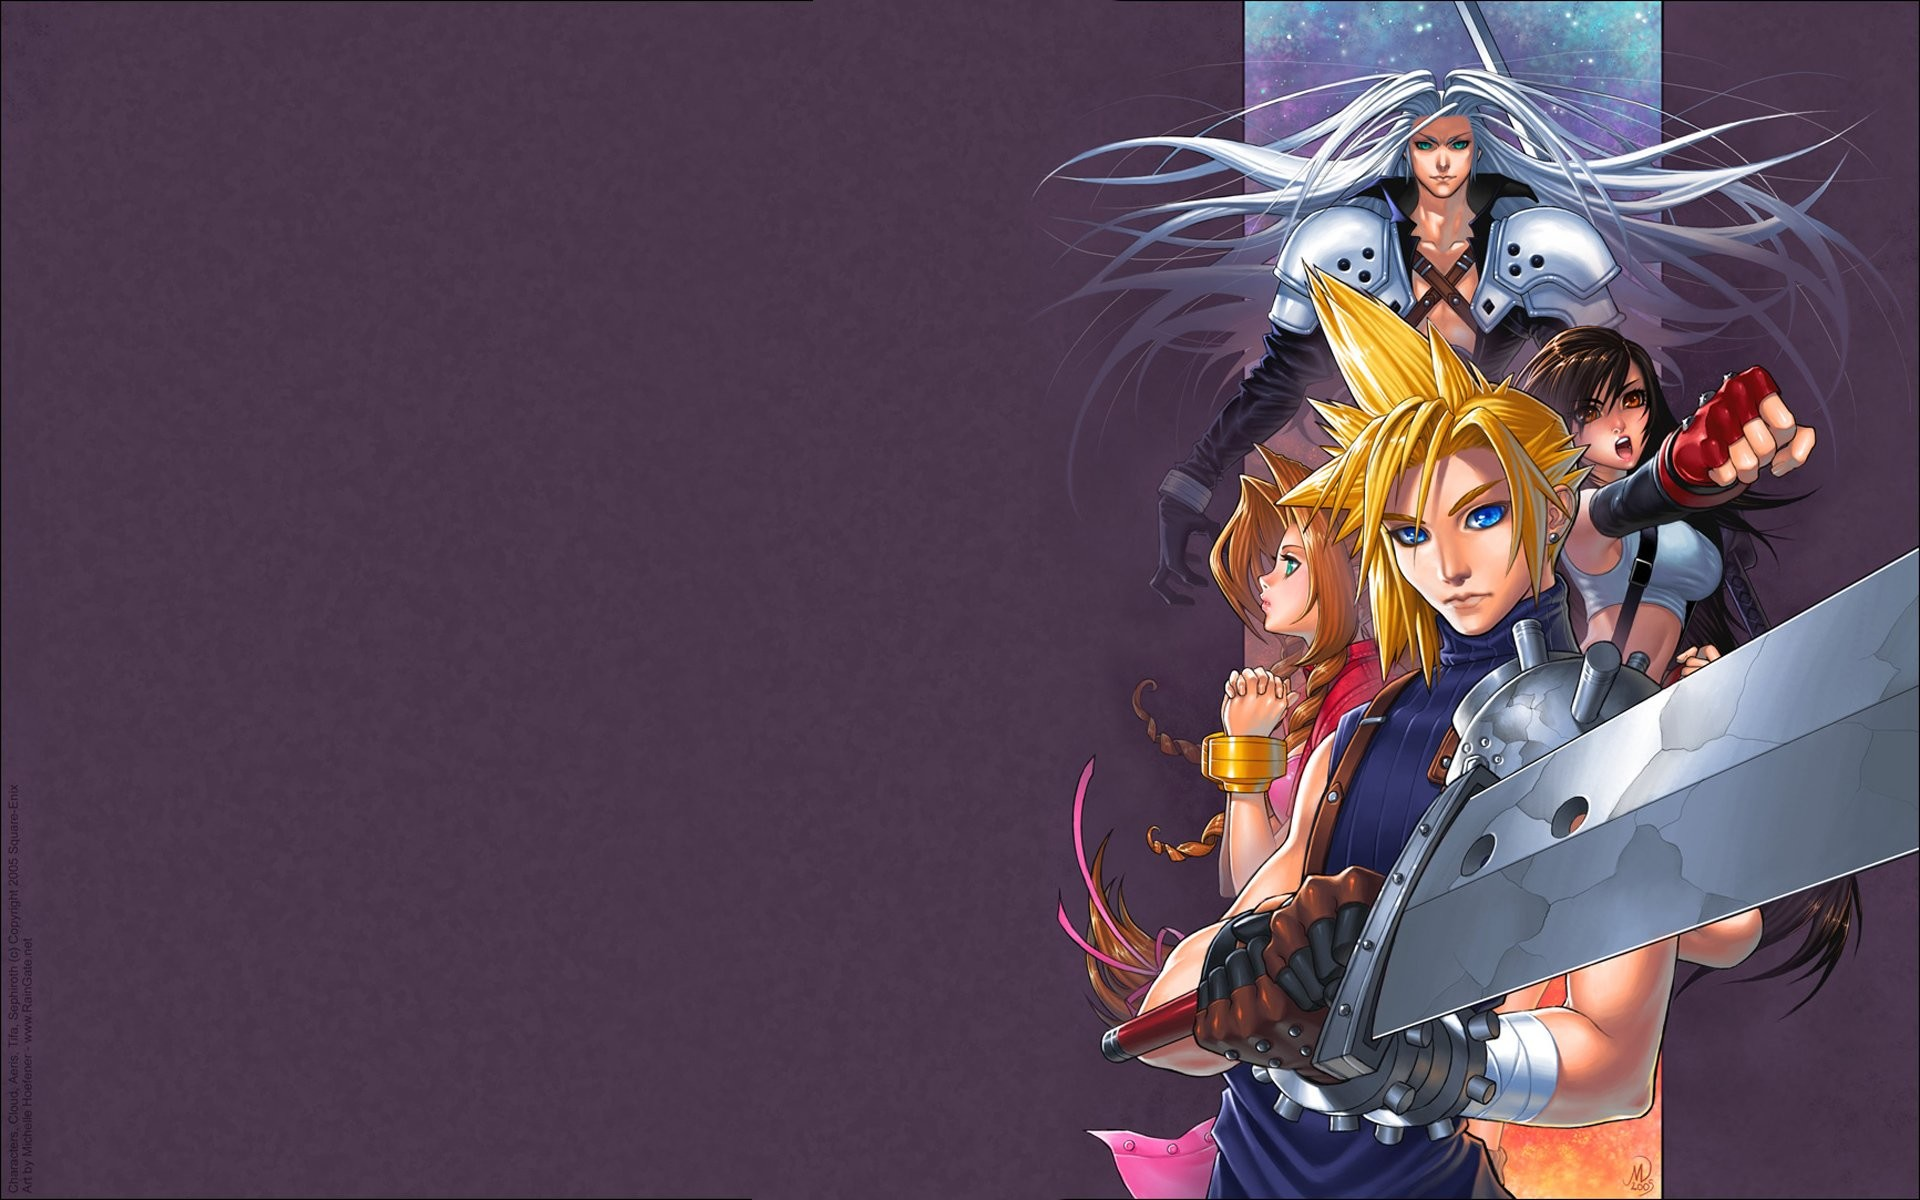 Res: 1920x1200, final fantasy animated wallpaper final fantasy cloud images sephiroth page2  aeris wallpaper anime